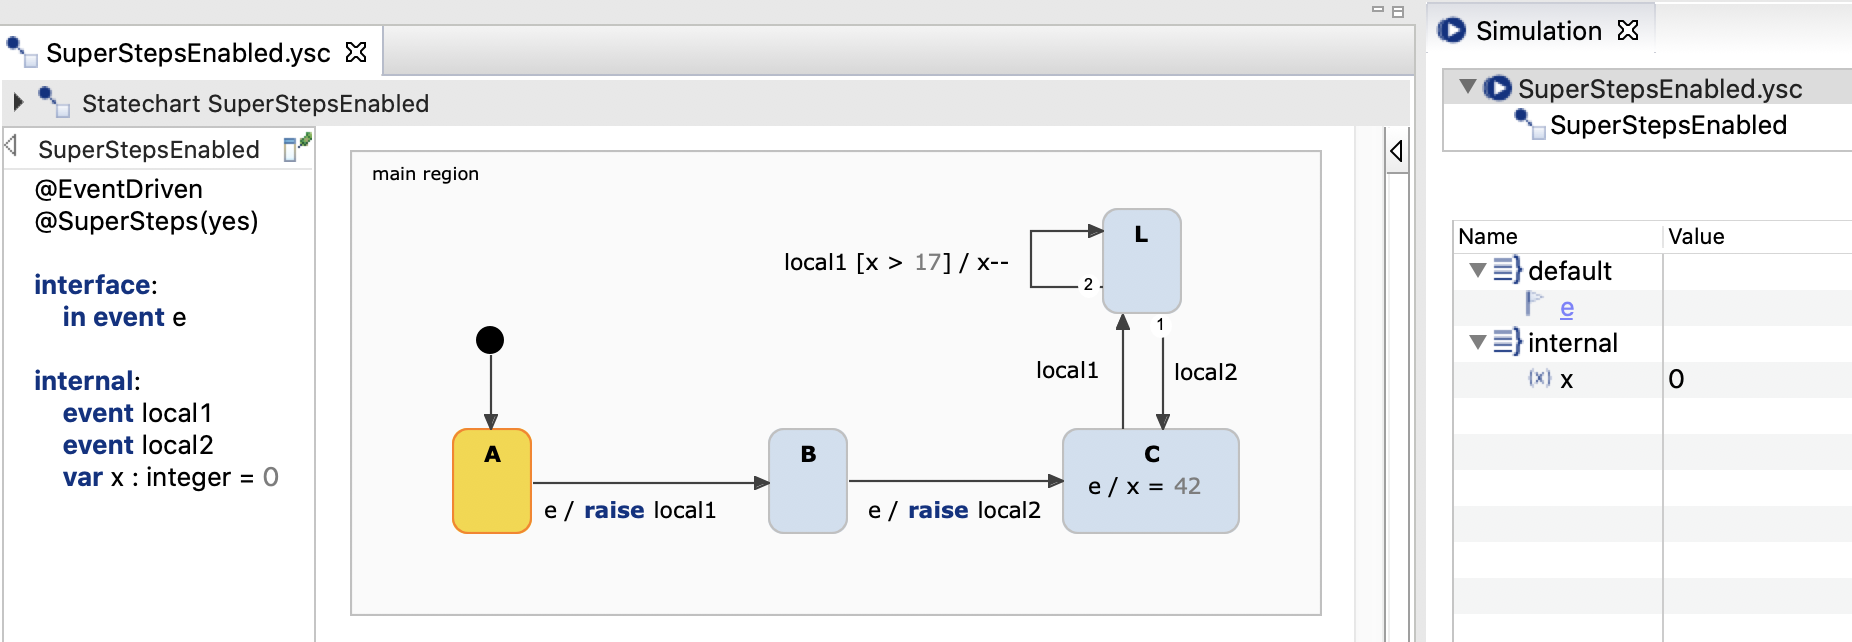 Example model for superstep semantic in event-driven statechart